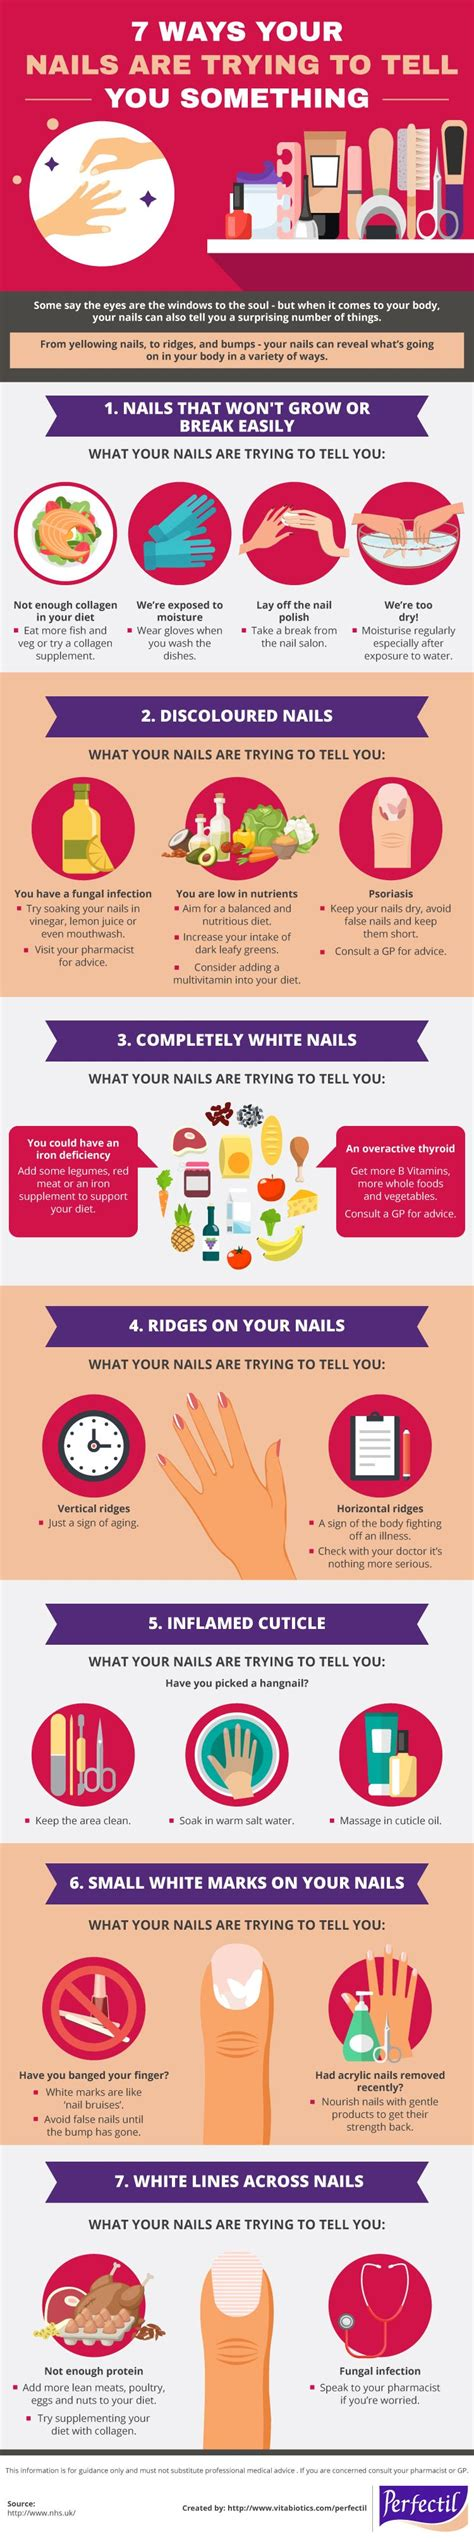 11 things your nails are trying to tell you about your health your nails are trying to tell you something venitism